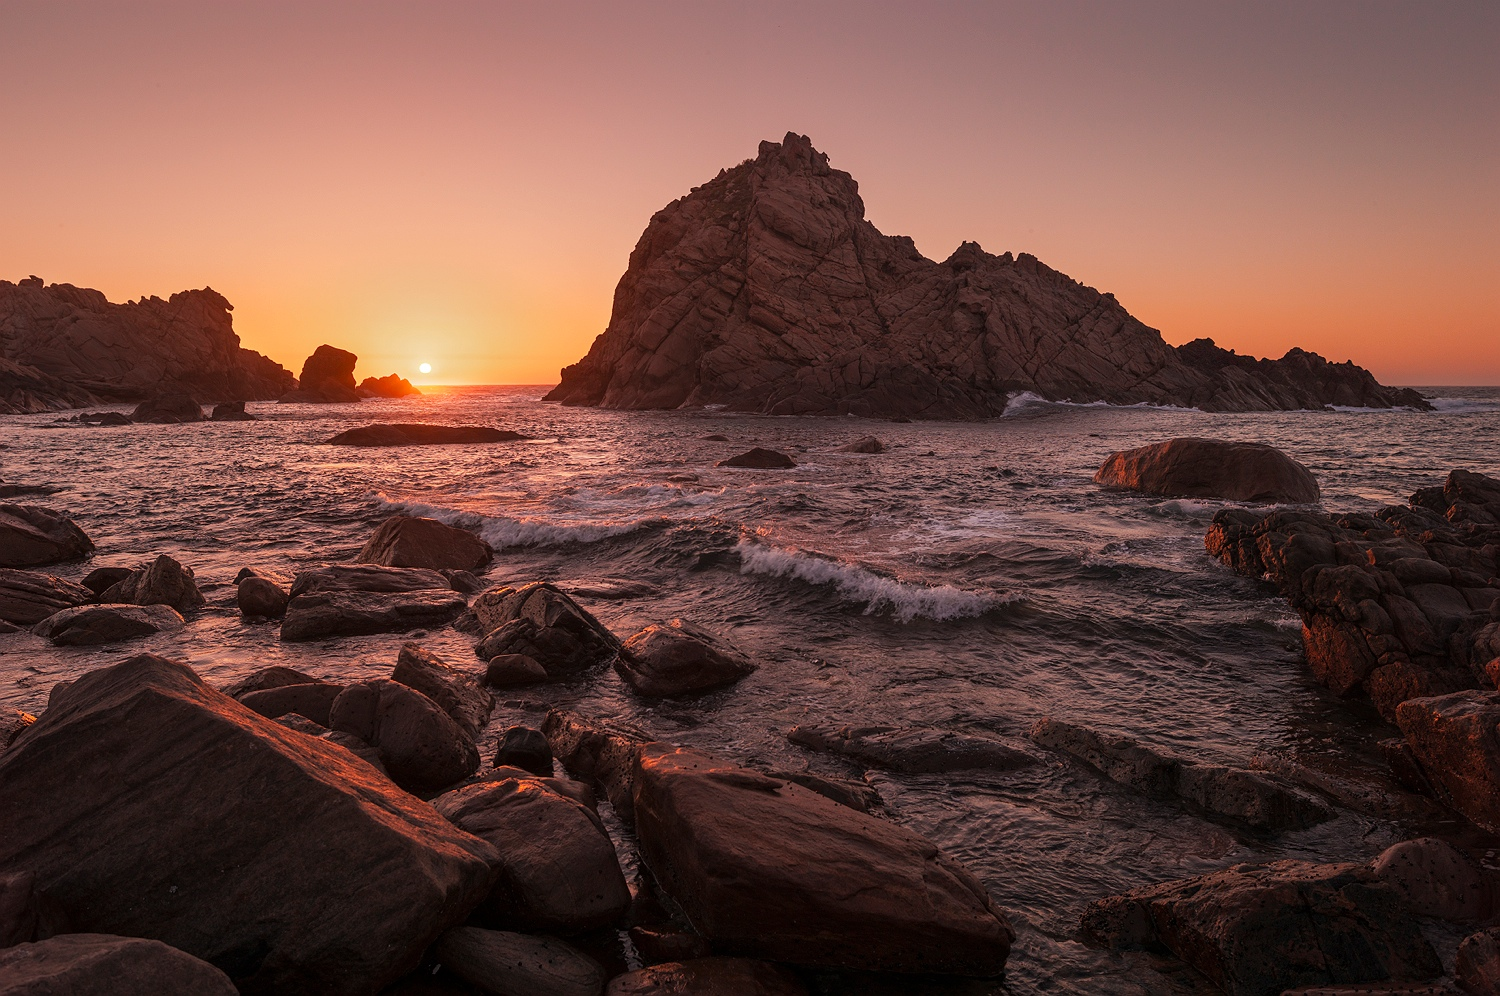 sunset_at_sugarloaf_rock